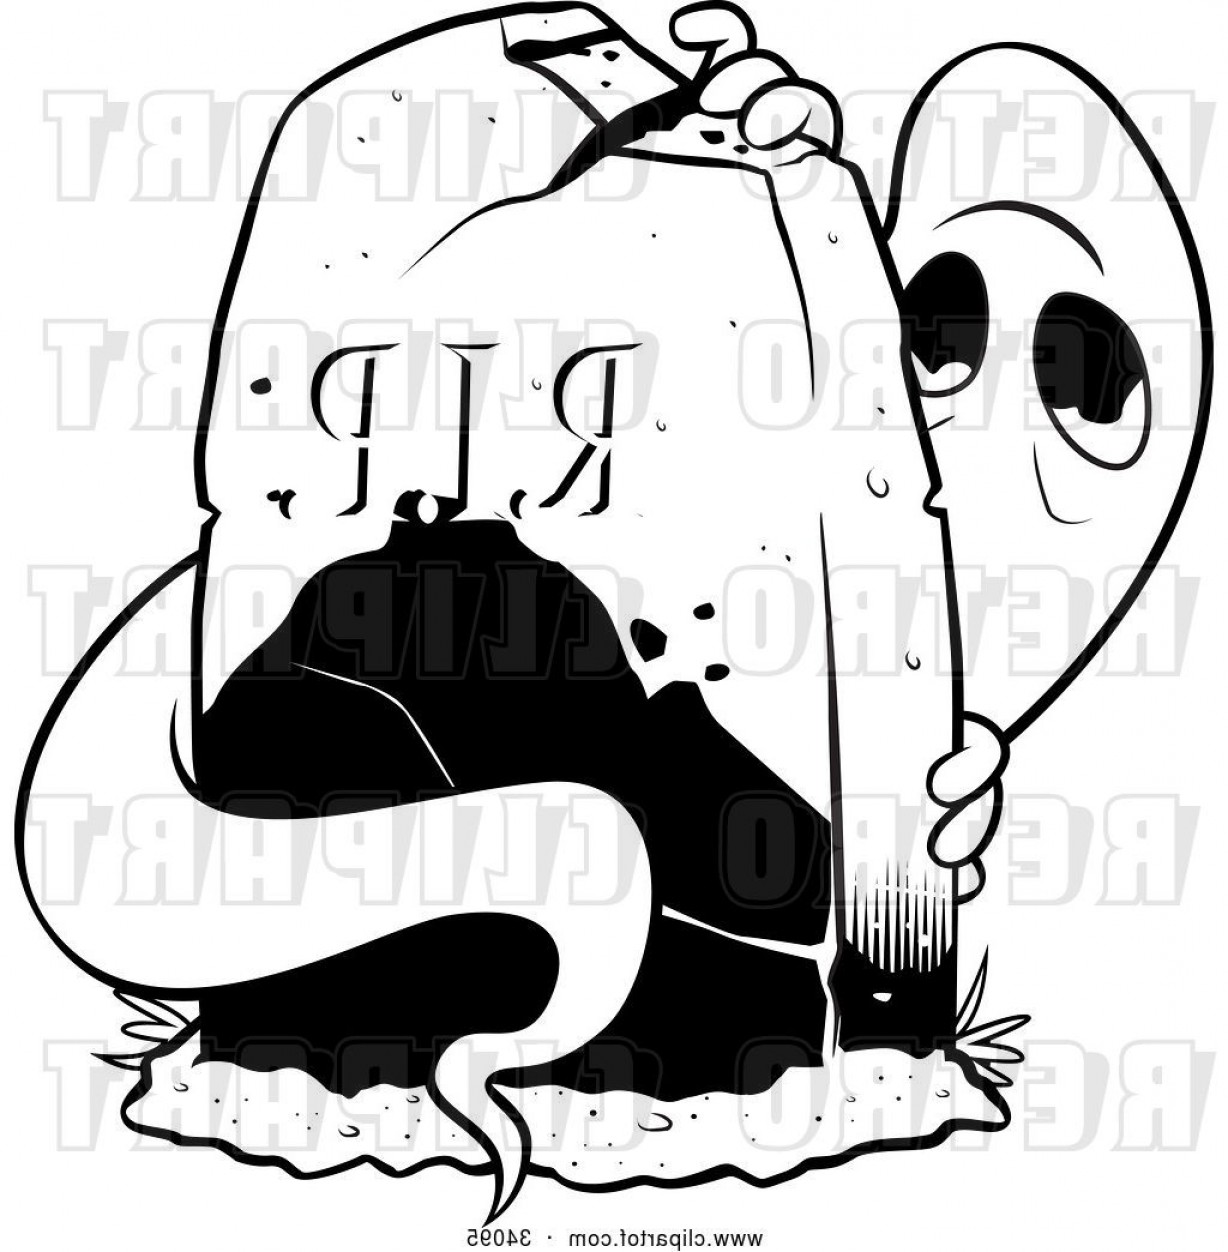 Gravestone Black And Whit Vector JPEG: Vector Clip Art Of Retro Spooked Ghost Peeking From Behind A Tombstone In A Cemetery By Lawrence Christmas Illustration